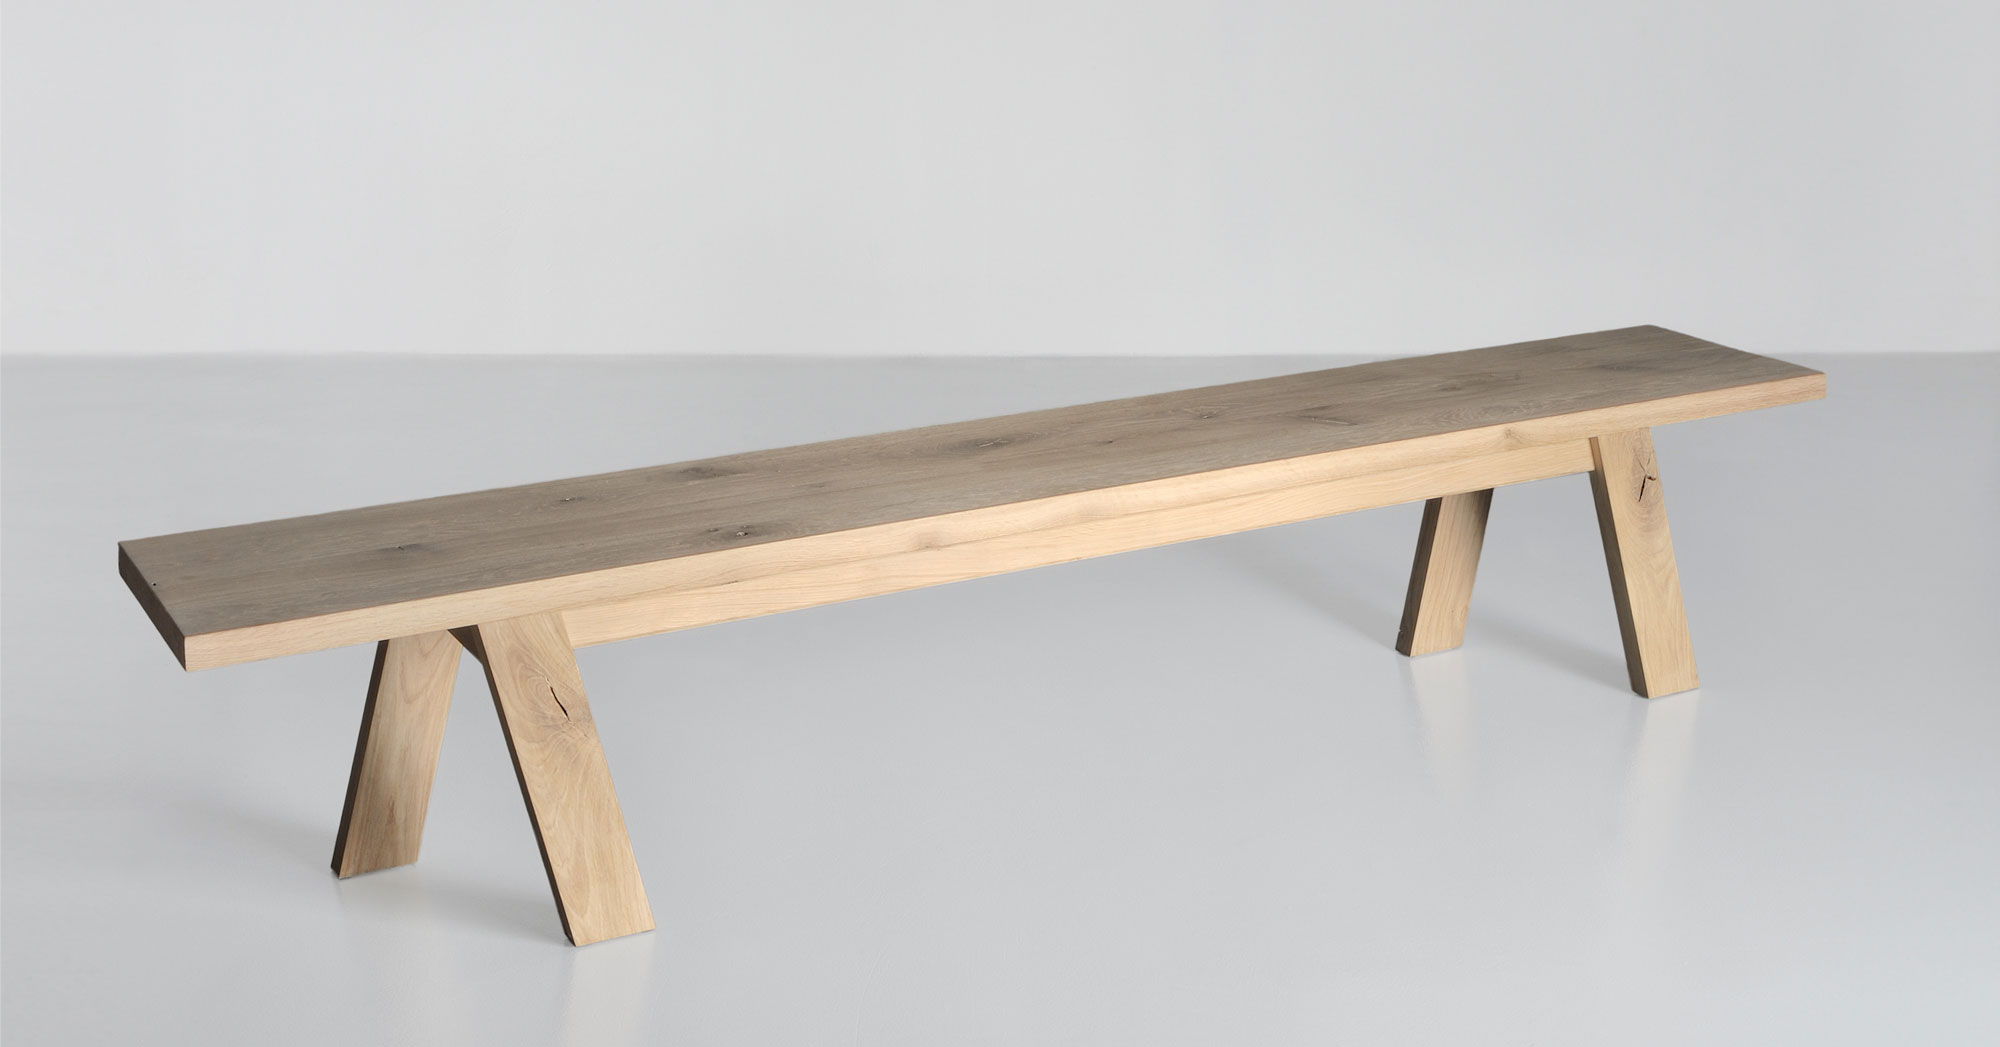 Unique Designer Bench GO 4213 custom made in solid wood by vitamin design